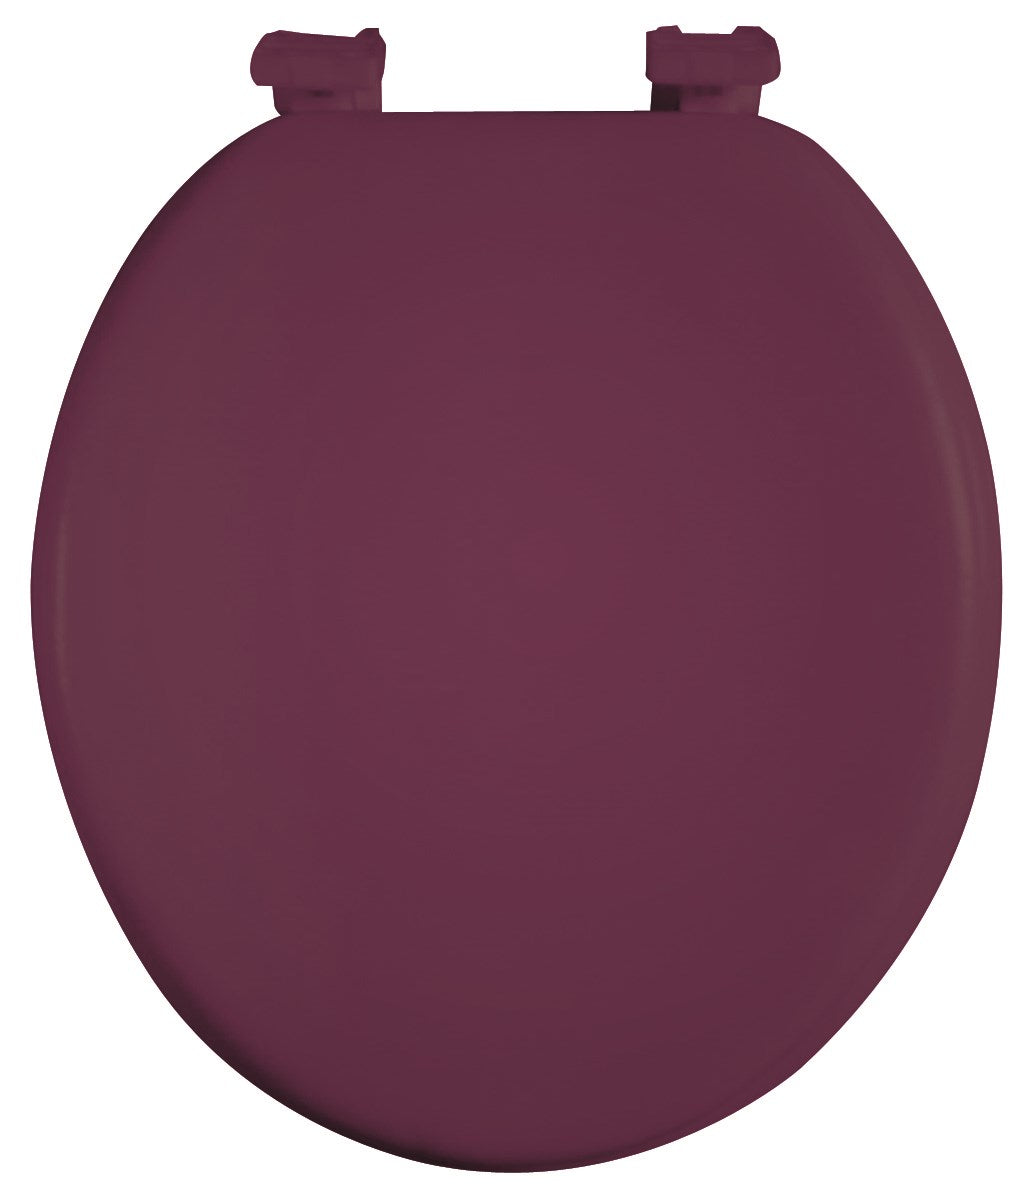 J&V Textiles Soft Round Toilet Seat With Easy Clean & Change Hinge, Padded (Burgundy) - Toilet Seats - J&V Textiles Premiere Home Goods